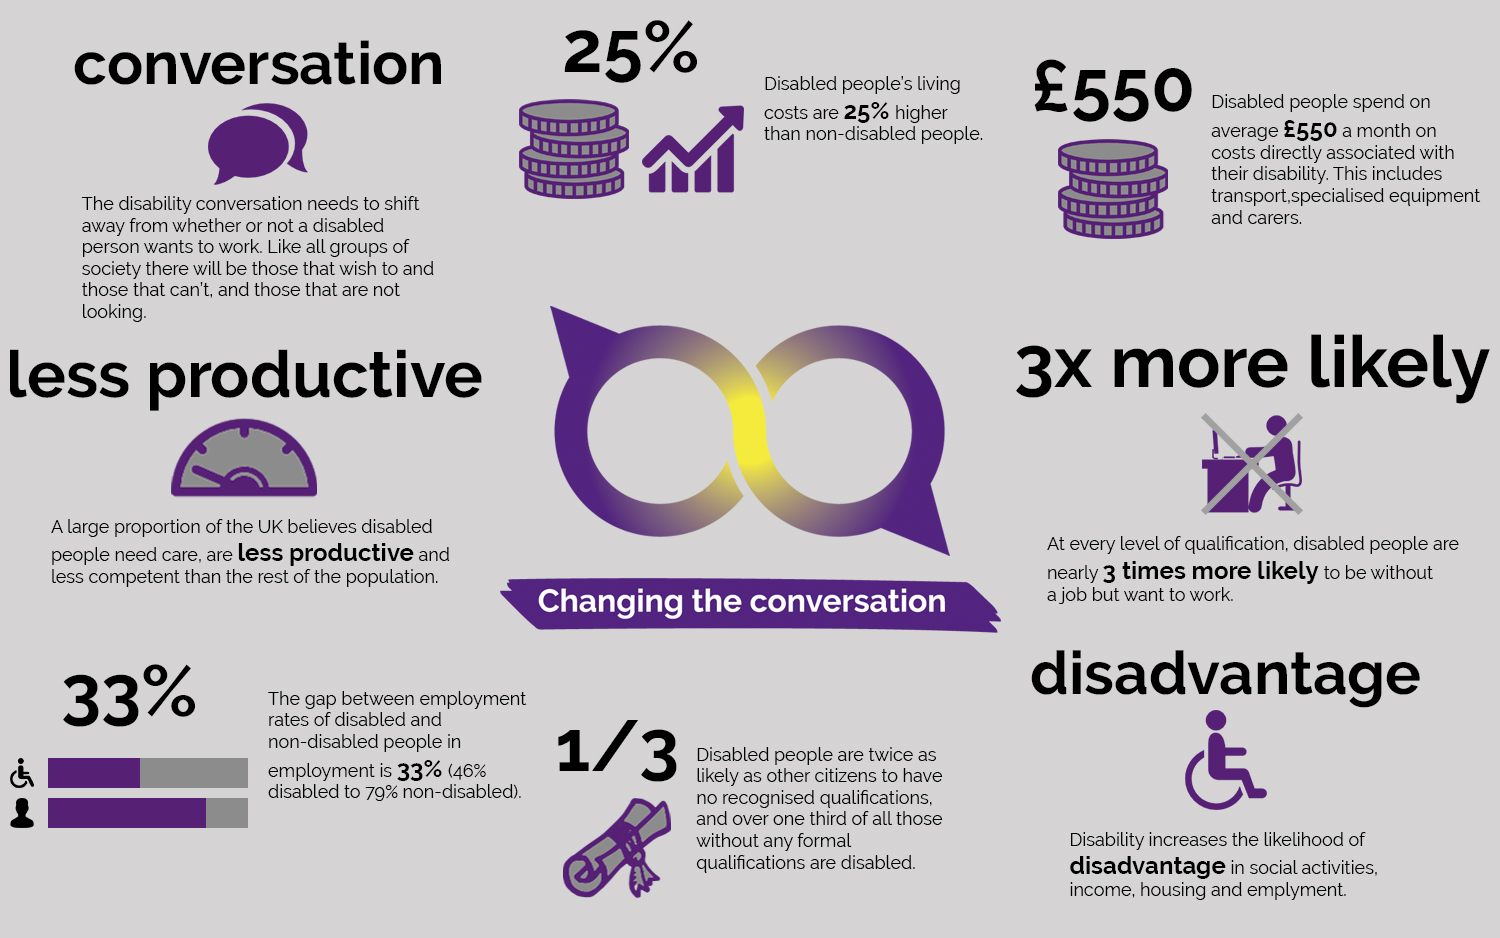 Infographic of facts and figures about disability and inequality.